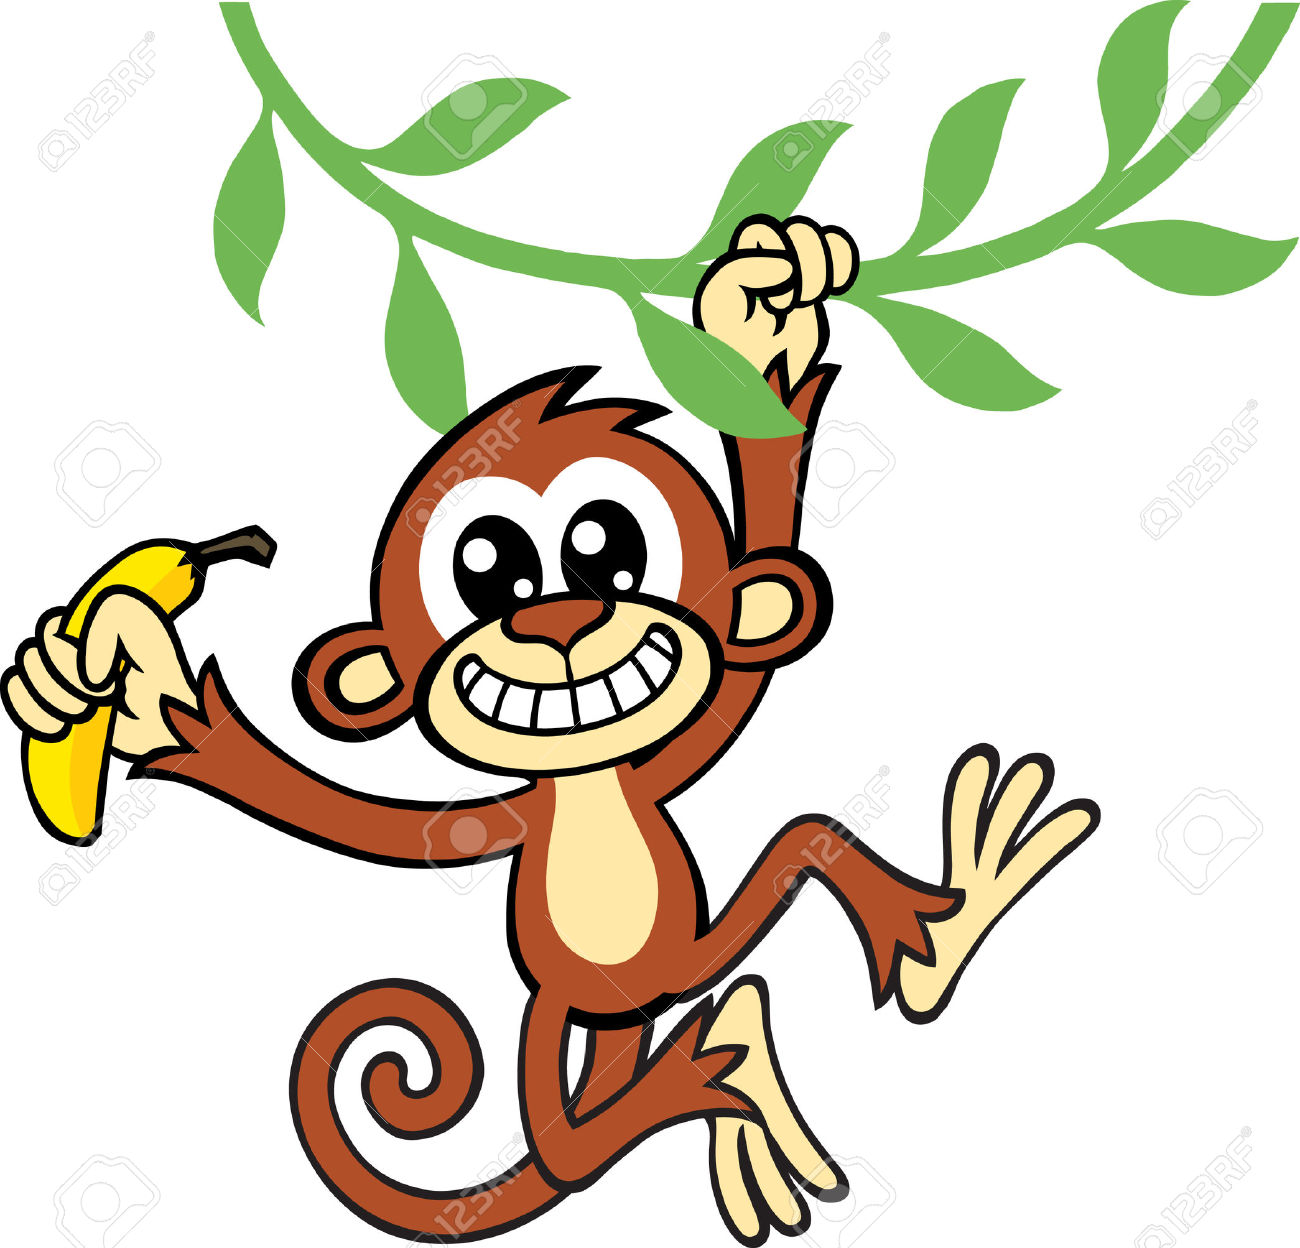 1300x1248 Free clipart + monkey + banana